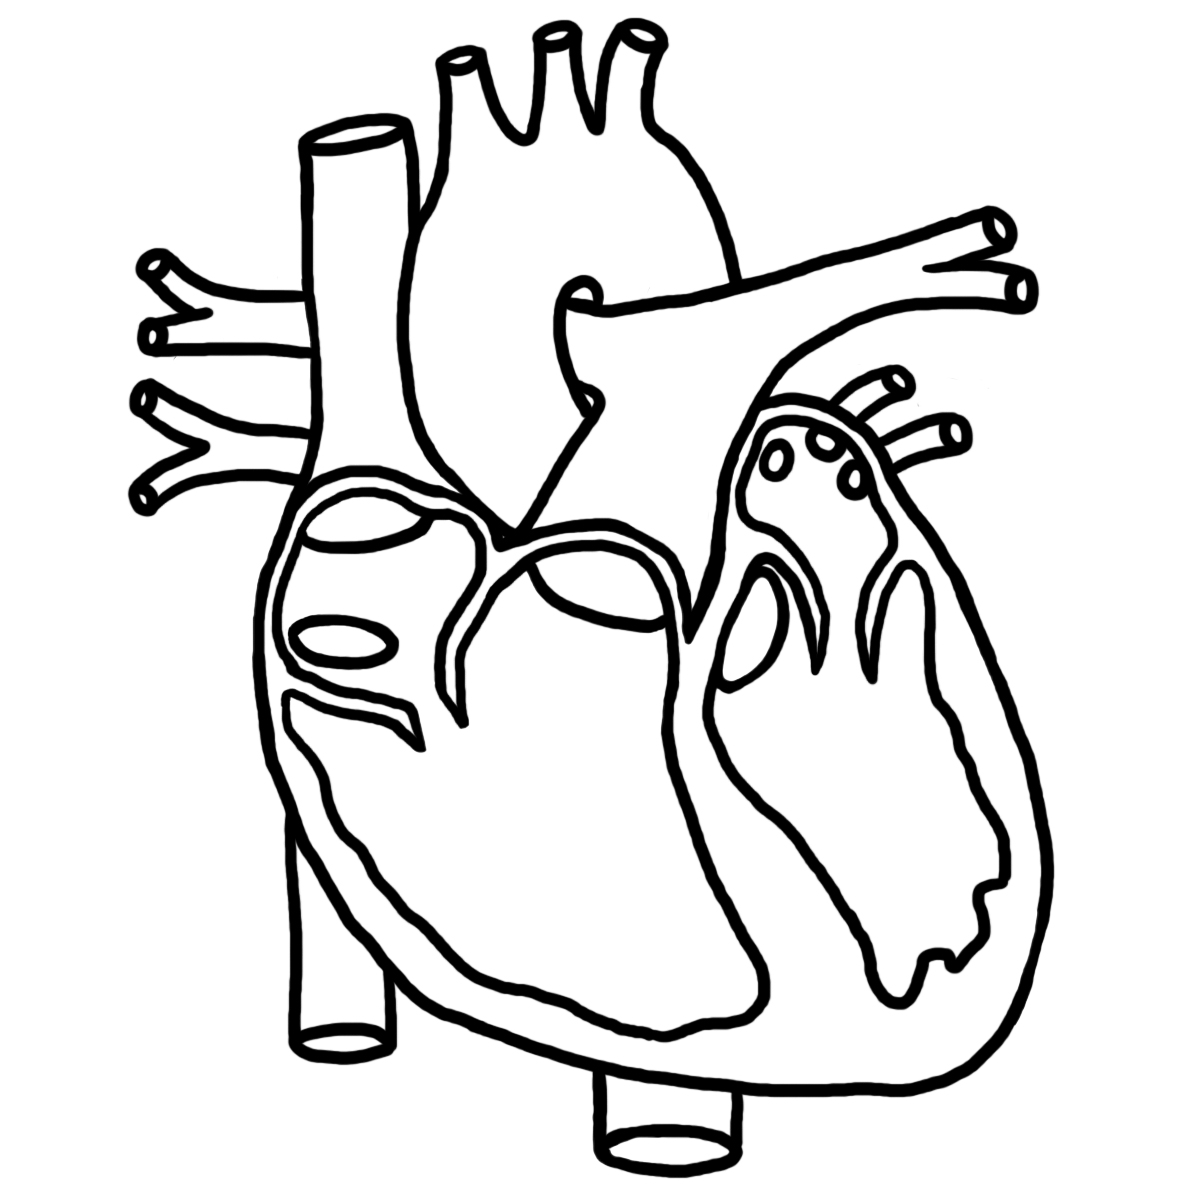 Real Human Heart Coloring Page